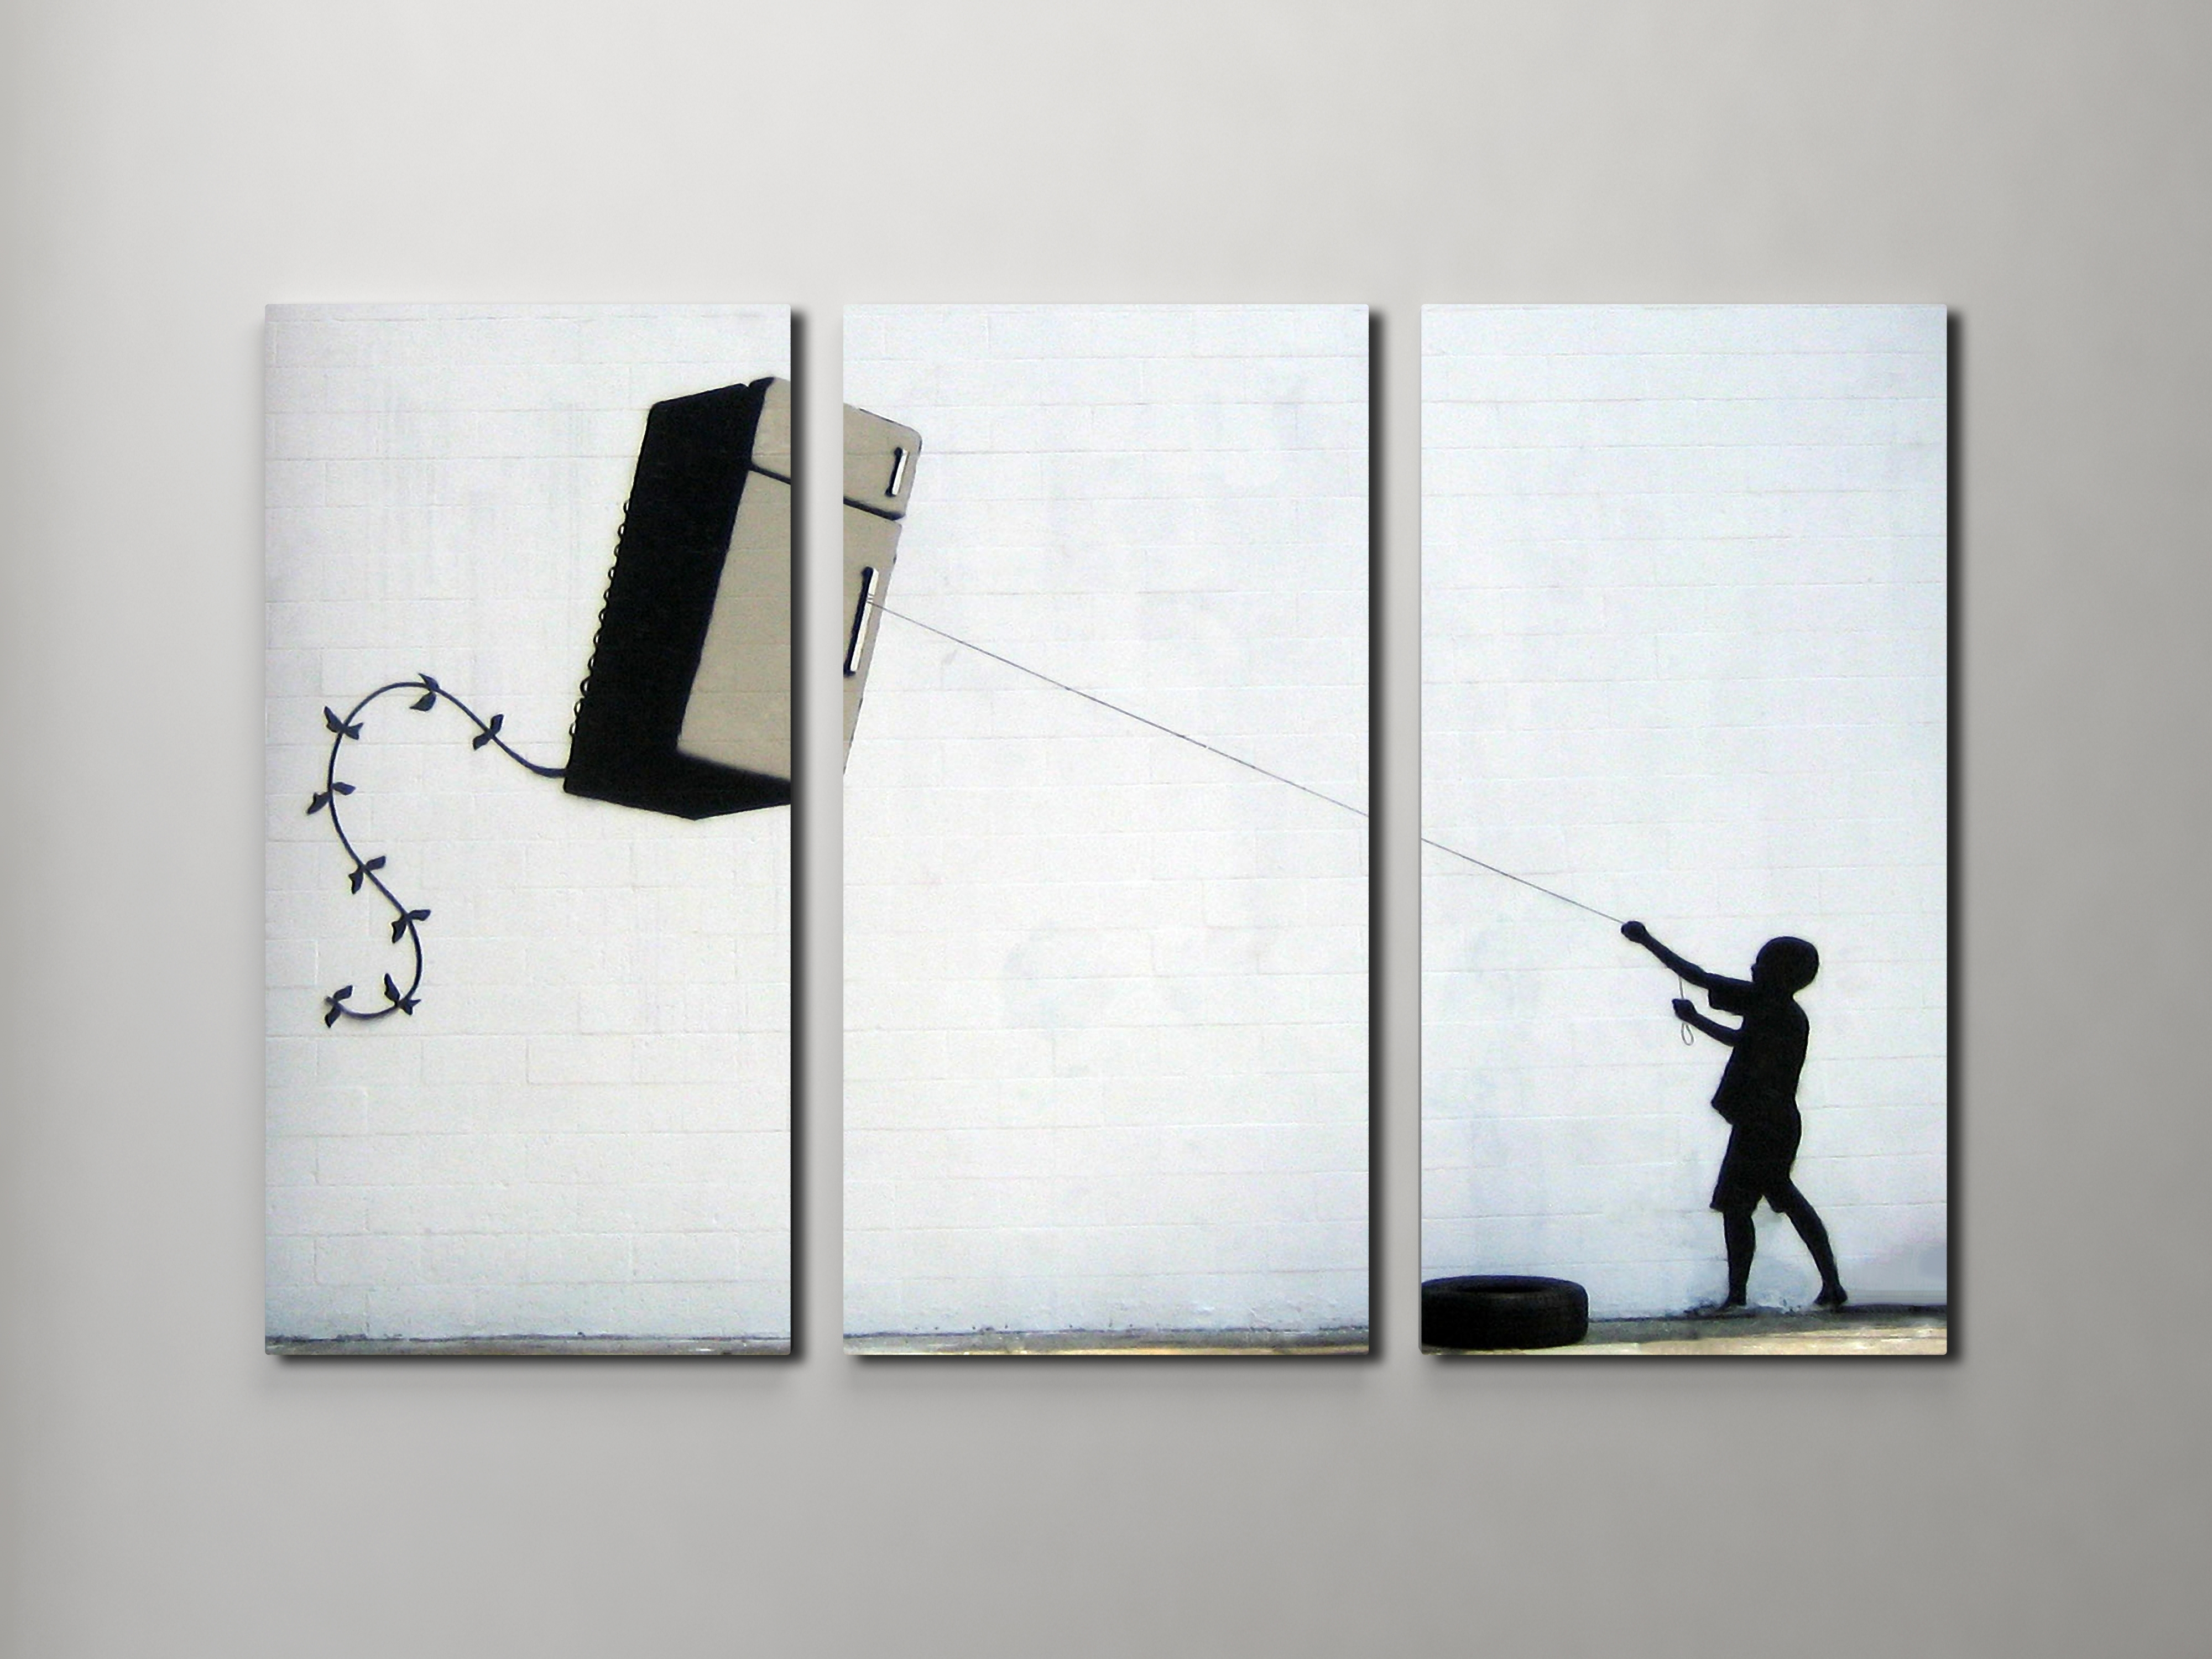 Well Liked Triptych Wall Art With Banksy Fridge Kite Triptych Canvas Wall Art (View 20 of 20)